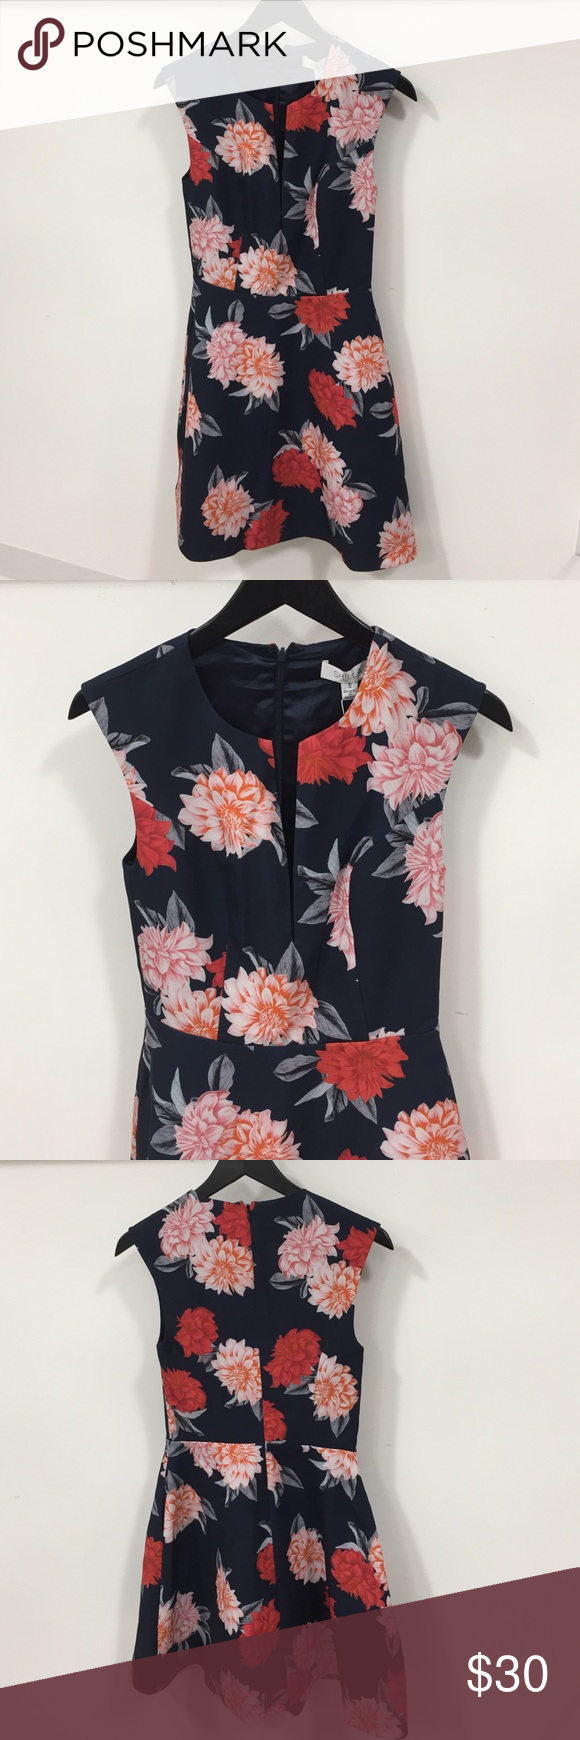 SHILLA Floral Dress Fit and flare navy and coral dress SHILLA Dresses